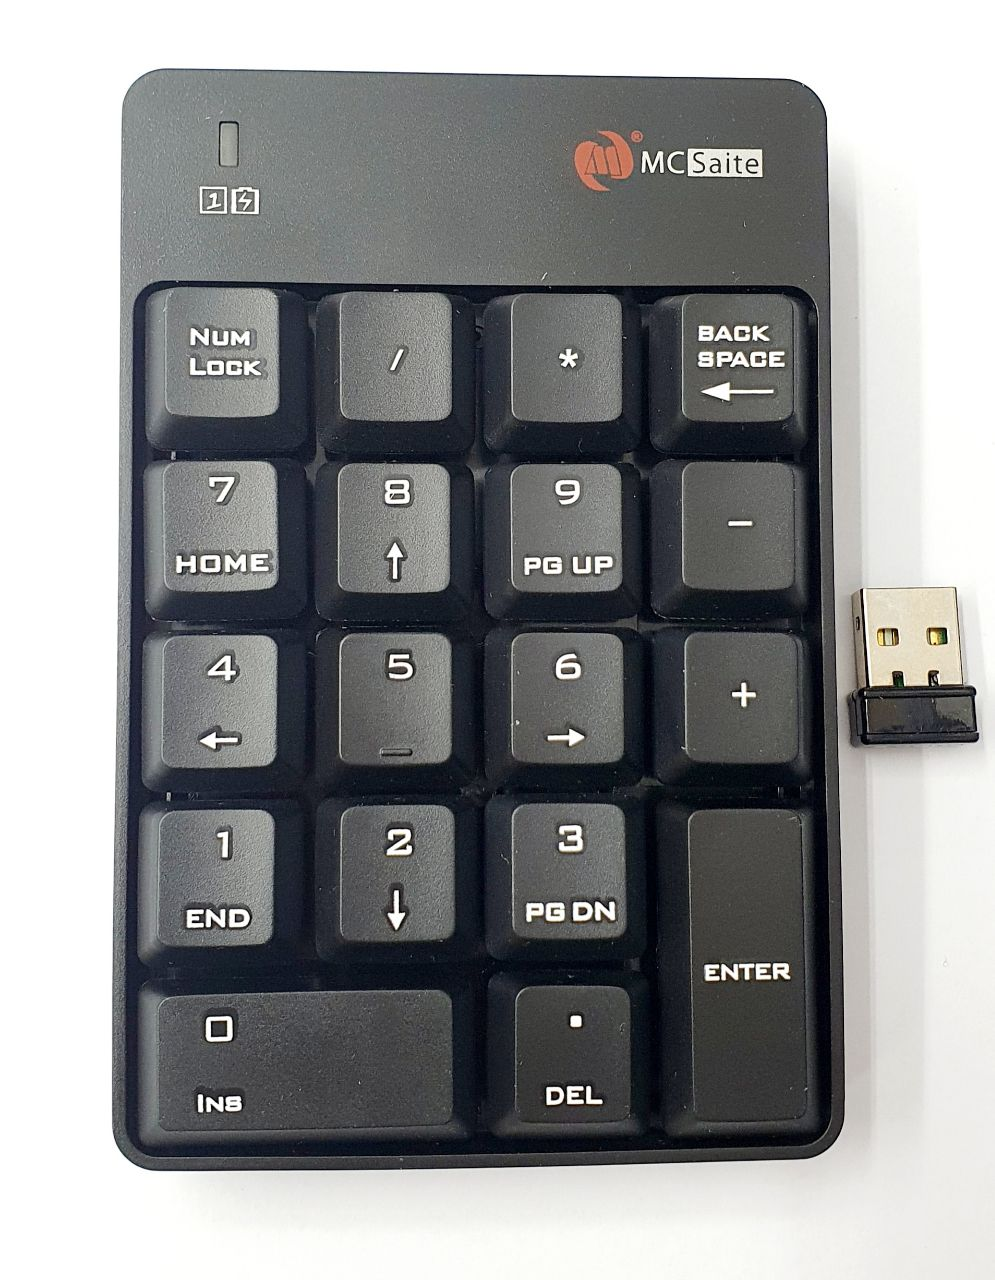 2.4G Wireless Numeric Keypad SK-51AG BLACK/ 18 keys Number Pad Mcsaite